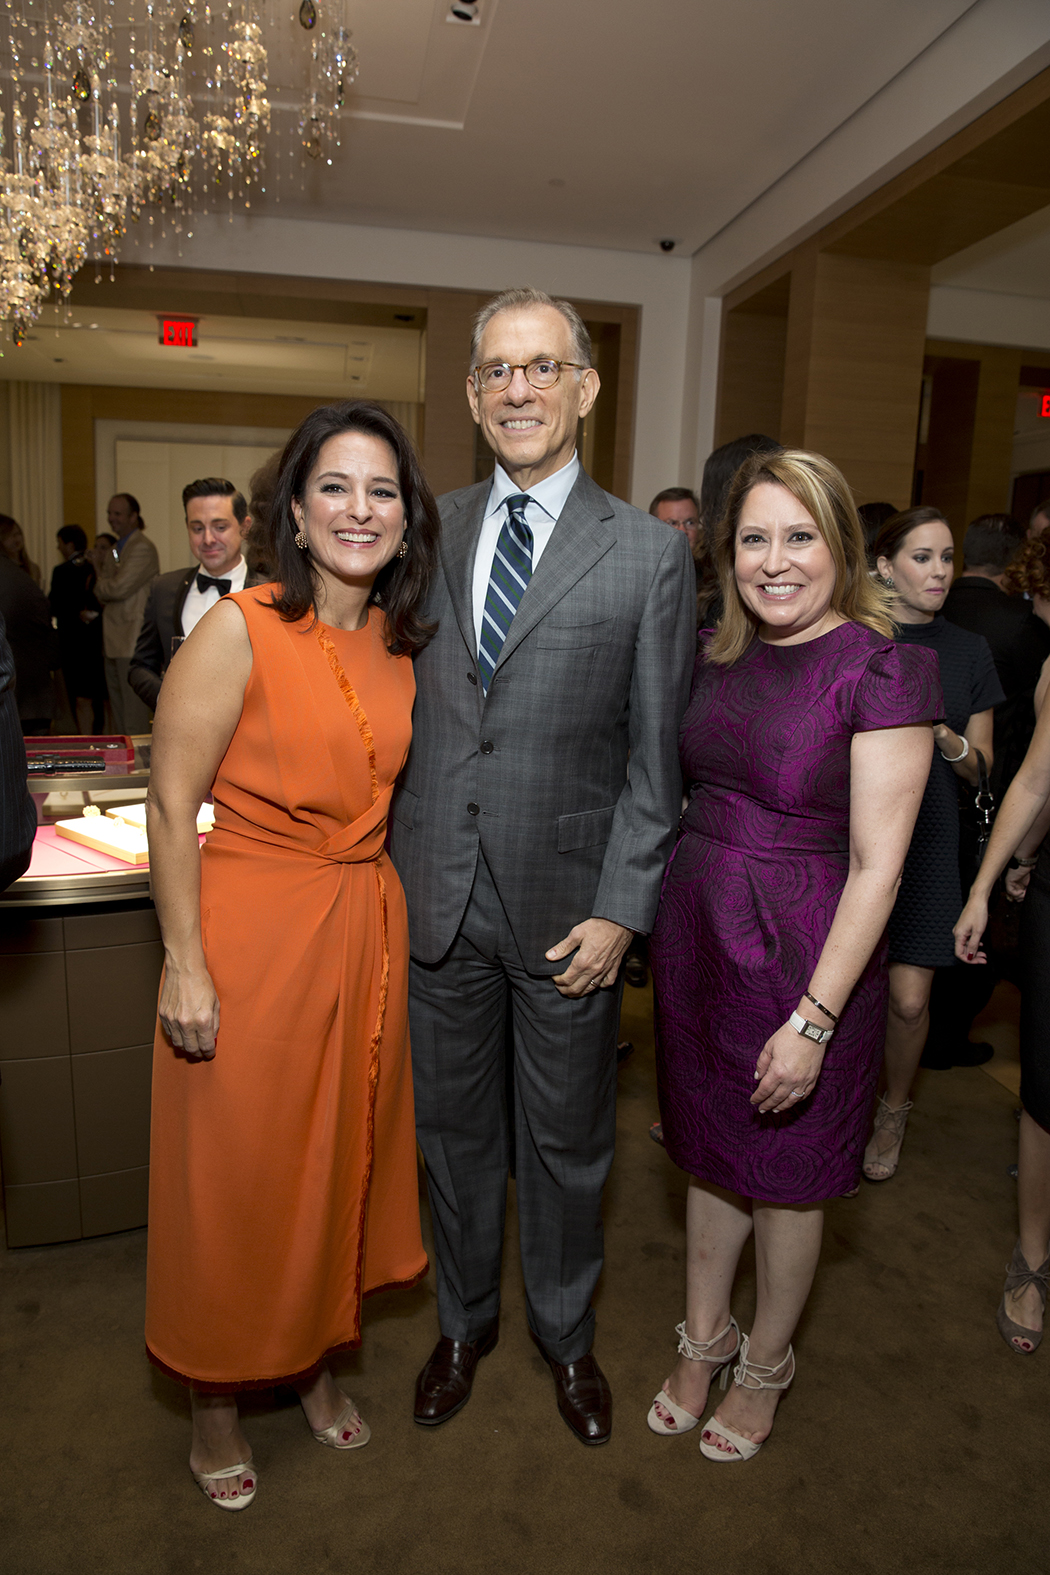 Mercedes Abramo, Gary Tinterow, Kari Gonzalez photo by: Jenny Antill Clifton